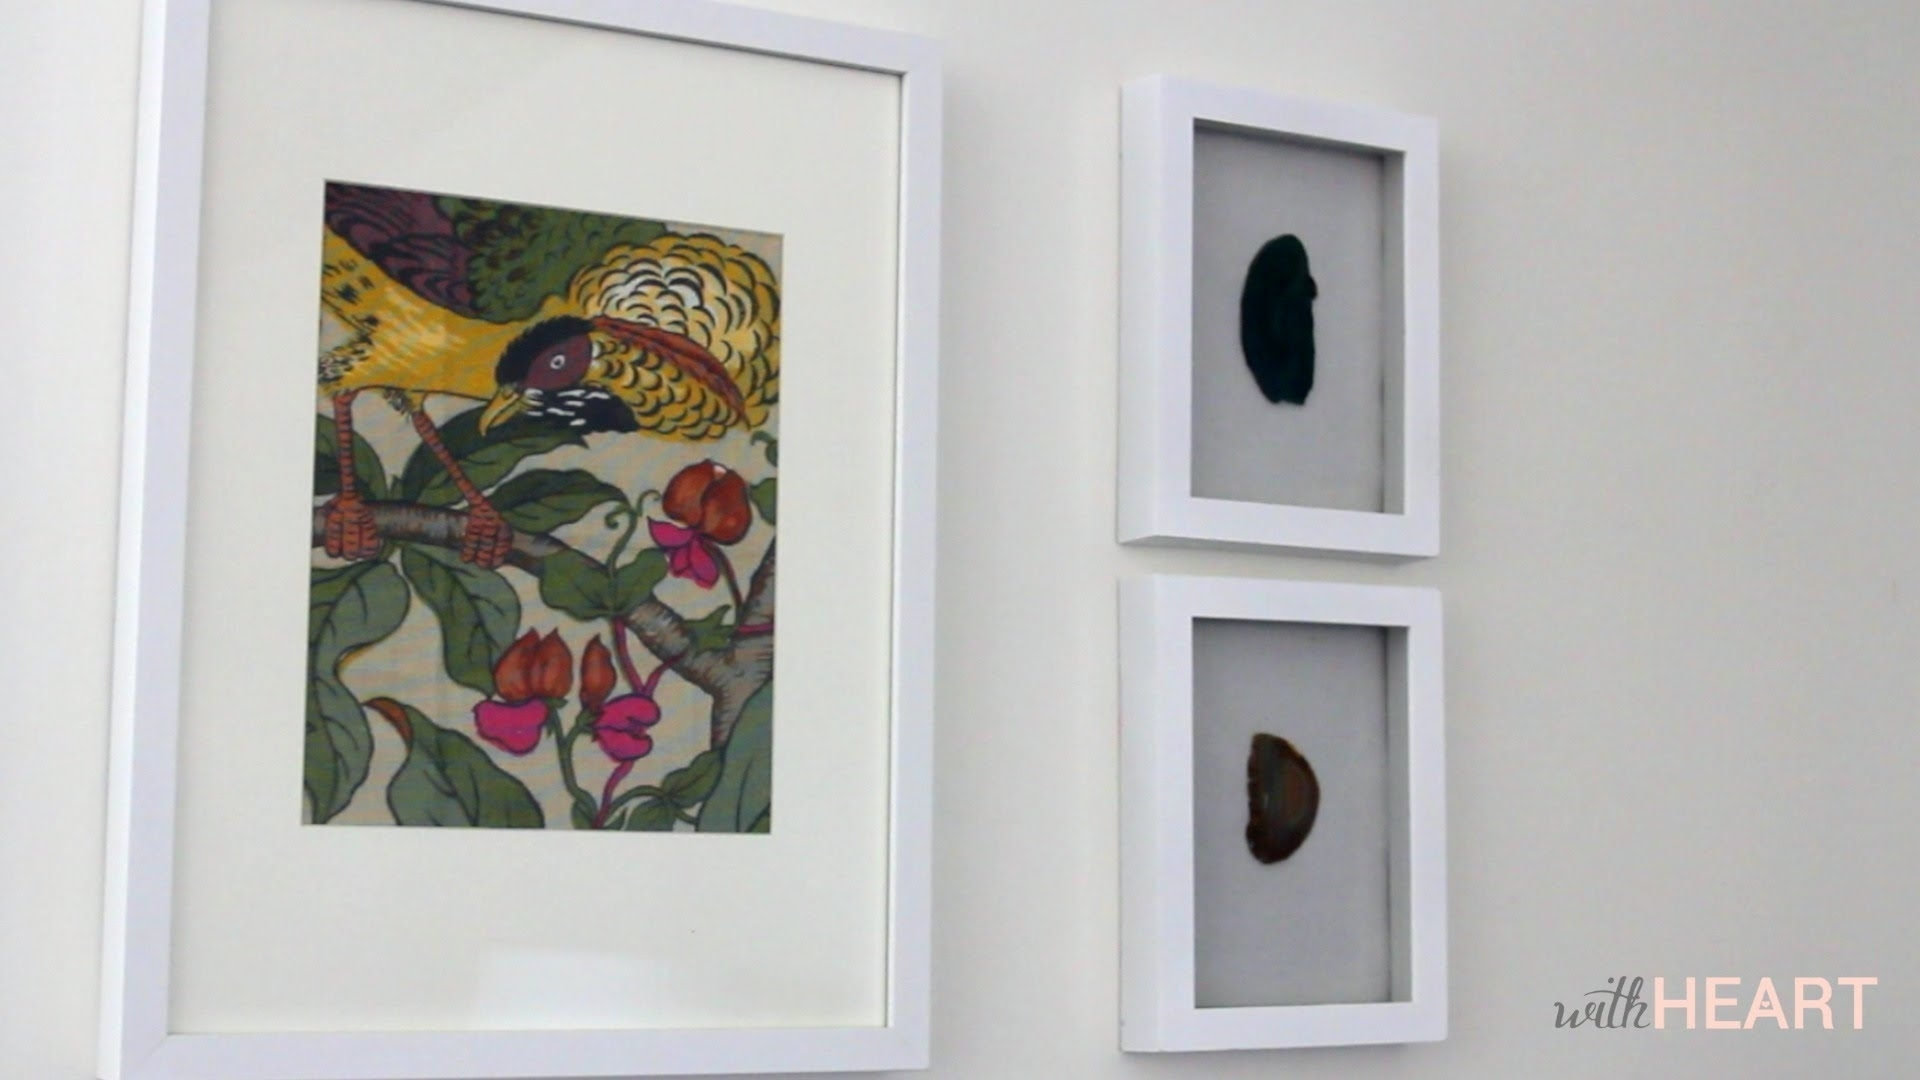 Easy Art: Framed Fabric | Withheart – Youtube In Most Recent Fabric Wall Art Frames (View 5 of 15)